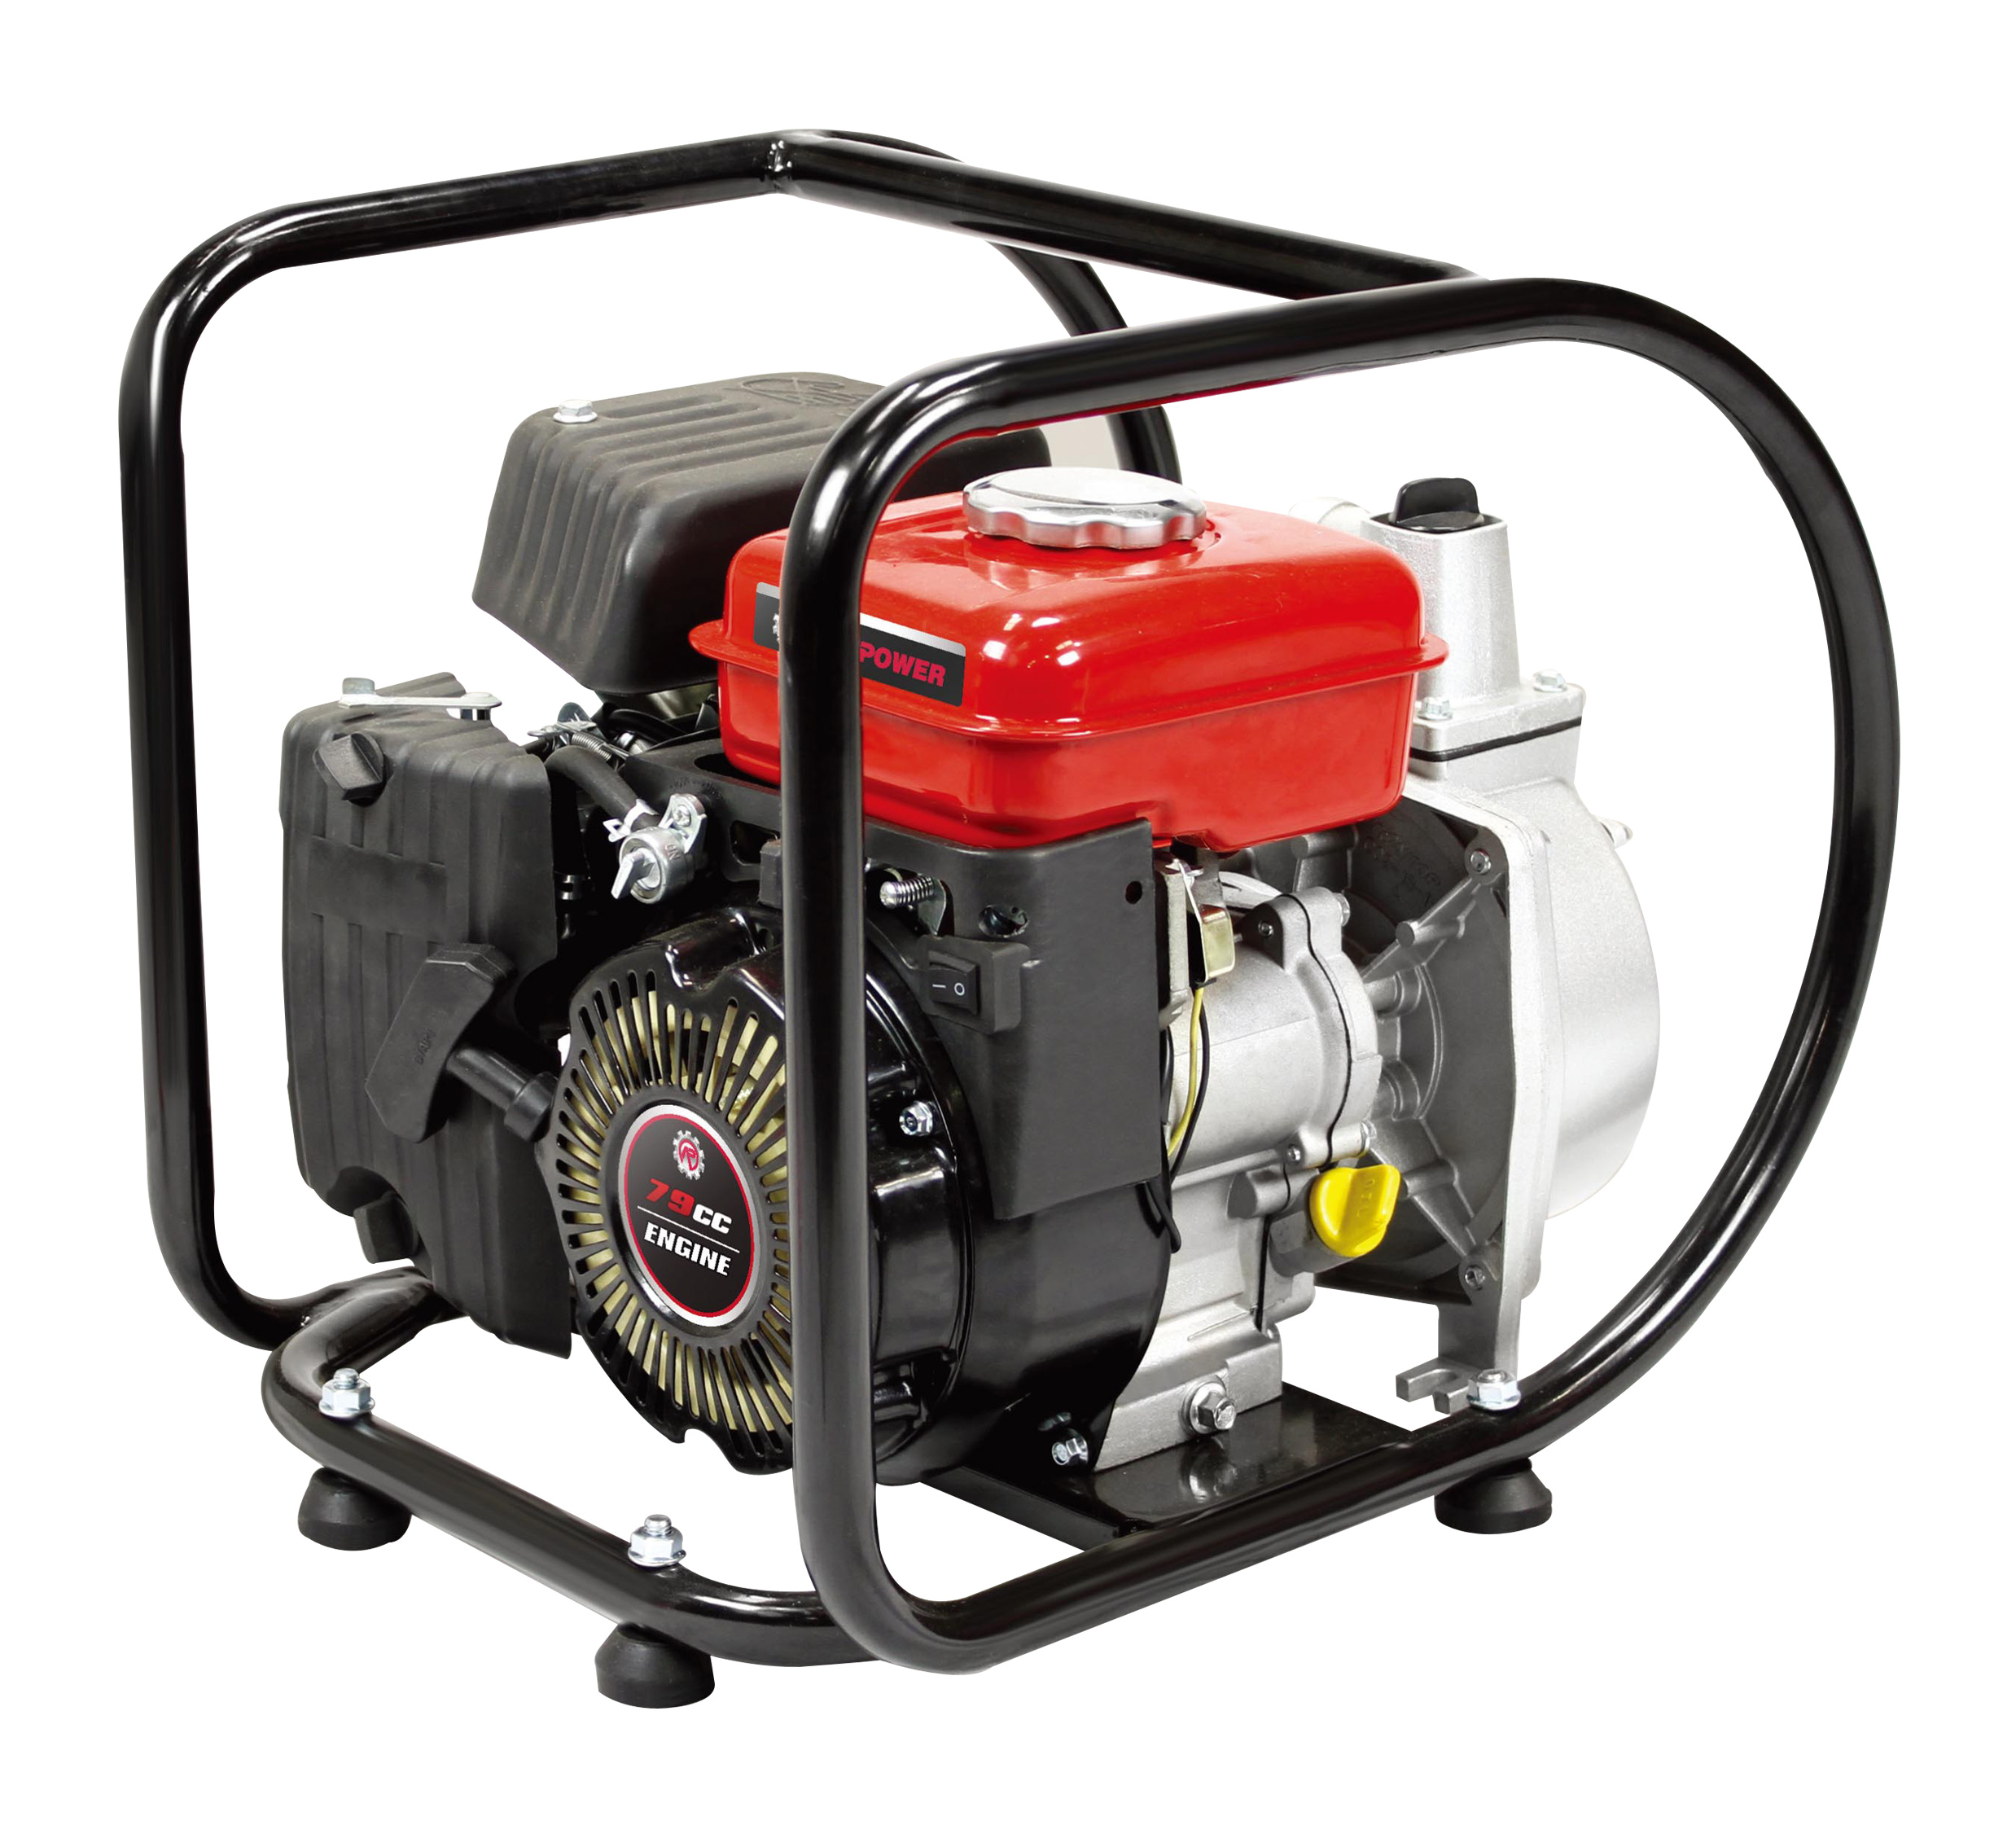 2.5 HP Gas Powered Semi-Trash Water Pump, 1.5 inch, Black/Red